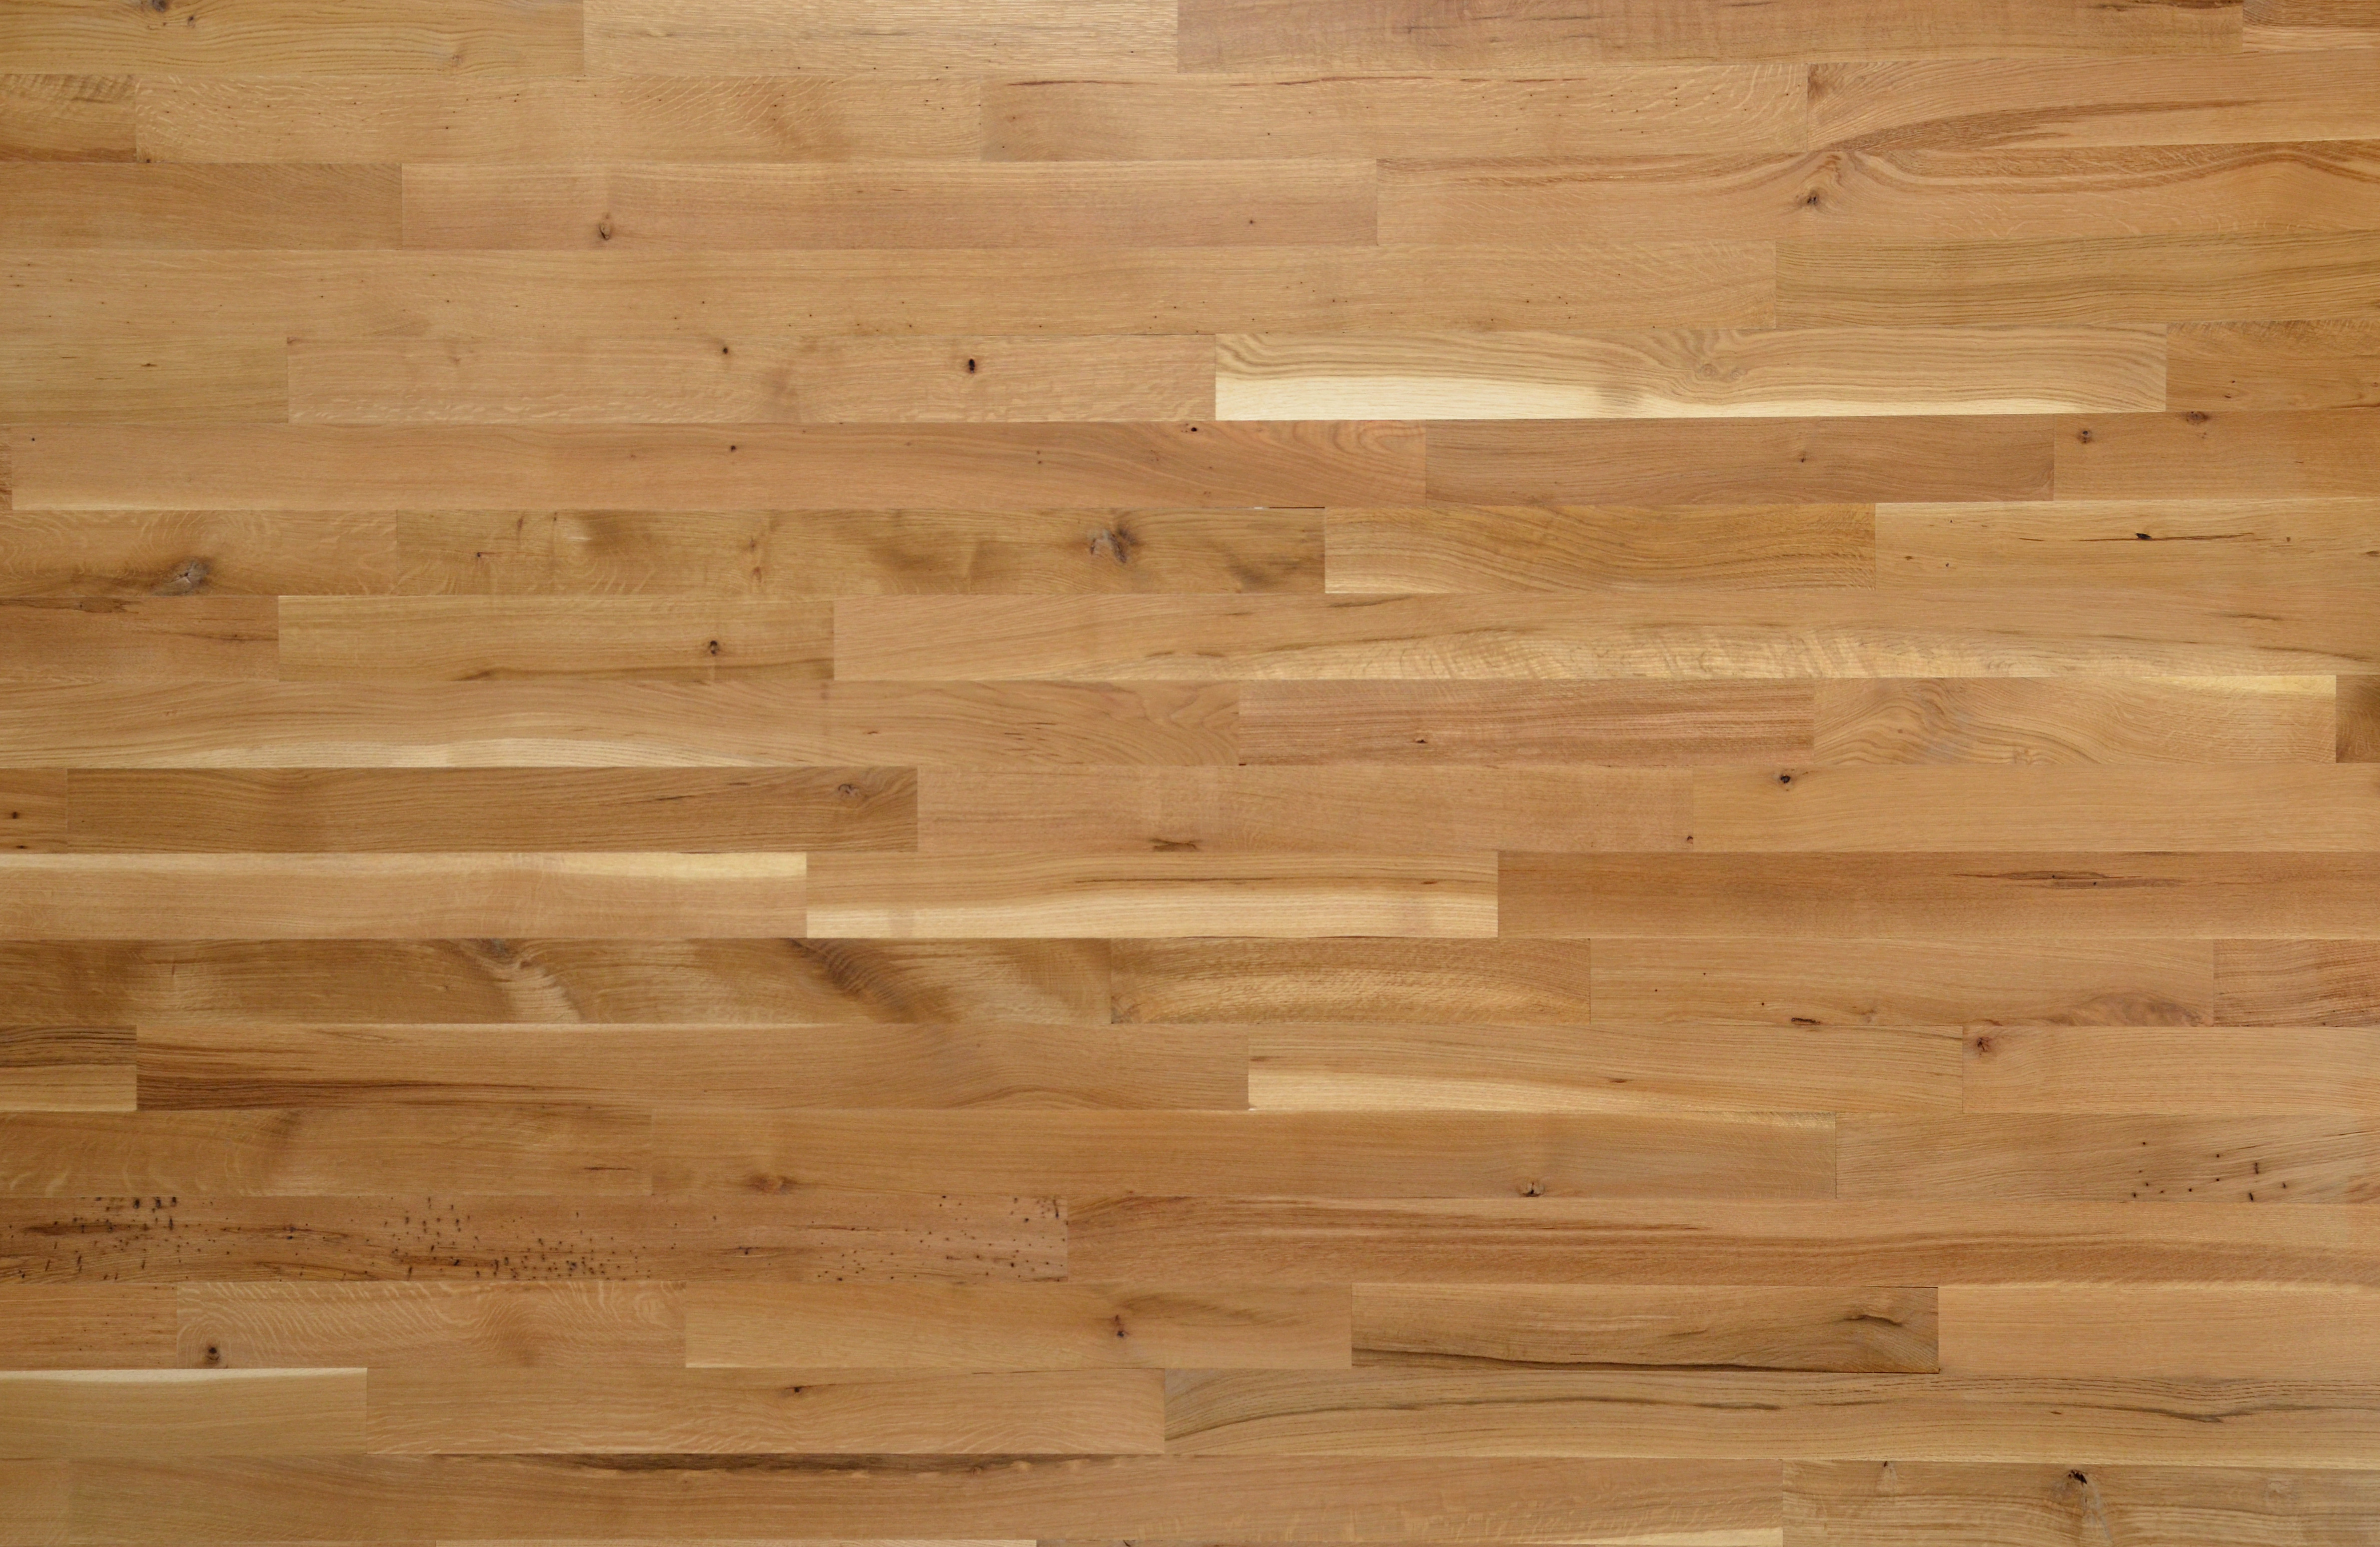 Hardwood Floor Knot Filler Of Lacrosse Hardwood Flooring Walnut White Oak Red Oak Hickory Intended for Rift Quartered Natural White Oak